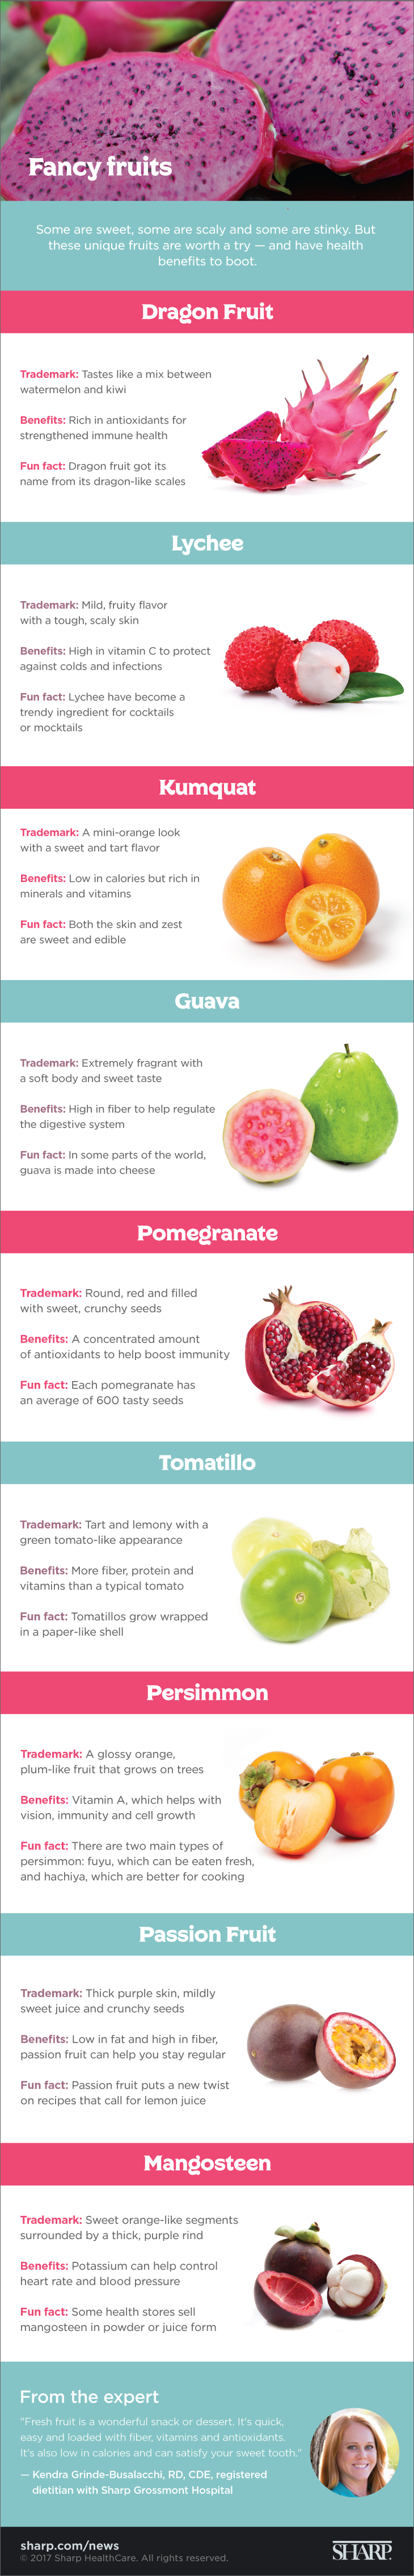 Fancy fruits (infographic). Some are sweet, some are scaly and some are stinky. But these unique fruits are worth a try – and have health benefits to boot. Dragon fruit, which got its name from its dragon-like scales, tastes like a mix between watermelon and kiwi. It is rich in antioxidants for strength and immune health. Lychee has a mild, fruity flavor with a tough scaly skin. It is high in vitamin C to protect against colds and infections. Lychee has become a trendy ingredient for cocktails or mocktails. Kumquat has a mini-orange look with a sweet and tart flavor. It is low in calories but rich in minerals and vitamins. Both the skin and zest of a kumquat are sweet and edible. Guava is extremely fragrant with a soft body and sweet taste. It is high in fiber to help regulate the digestive system and in some parts of the world, guava is made into cheese. Pomegranate is round, red and filled with sweet, crunchy seeds. In fact, each pomegranate has an average of 600 tasty seeds. Pomegranate offers a concentrated amount of antioxidants to help boost immunity. Tomatillo is tart and lemony with a green tomato-like appearance and grows wrapped in a paper-like a shell. It has more fiber, protein and vitamins than a typical tomato. Persimmon is a glossy orange, plum-like fruit that grows on trees. It has vitamin A, which helps with vision, immunity and cell growth. There are two main types of persimmon – the fuyu, which can be eaten fresh, and the hachiya, which are better for cooking. Passion fruit has thick purple skin, mildly sweet juice and crunchy seeds. Low in fat and high in fiber, passion fruit can help you stay regular and puts a new twist on recipes that call for lemon juice. Mangosteen has sweet orange-like segments surrounded by a thick, purple rind. It has potassium, which can help control heart rate and blood pressure. In fact, some health stores sell mangosteen in powder or juice form. Fresh fruit is a wonderful snack or dessert, says Kendra Grinde-Busalacchi, RD, CDE, a registered dietician nutritionist with Sharp Grossmont Hospital. It's quick, easy and loaded with fiber, vitamins and antioxidants. It's also low in calories and can satisfy your sweet tooth.